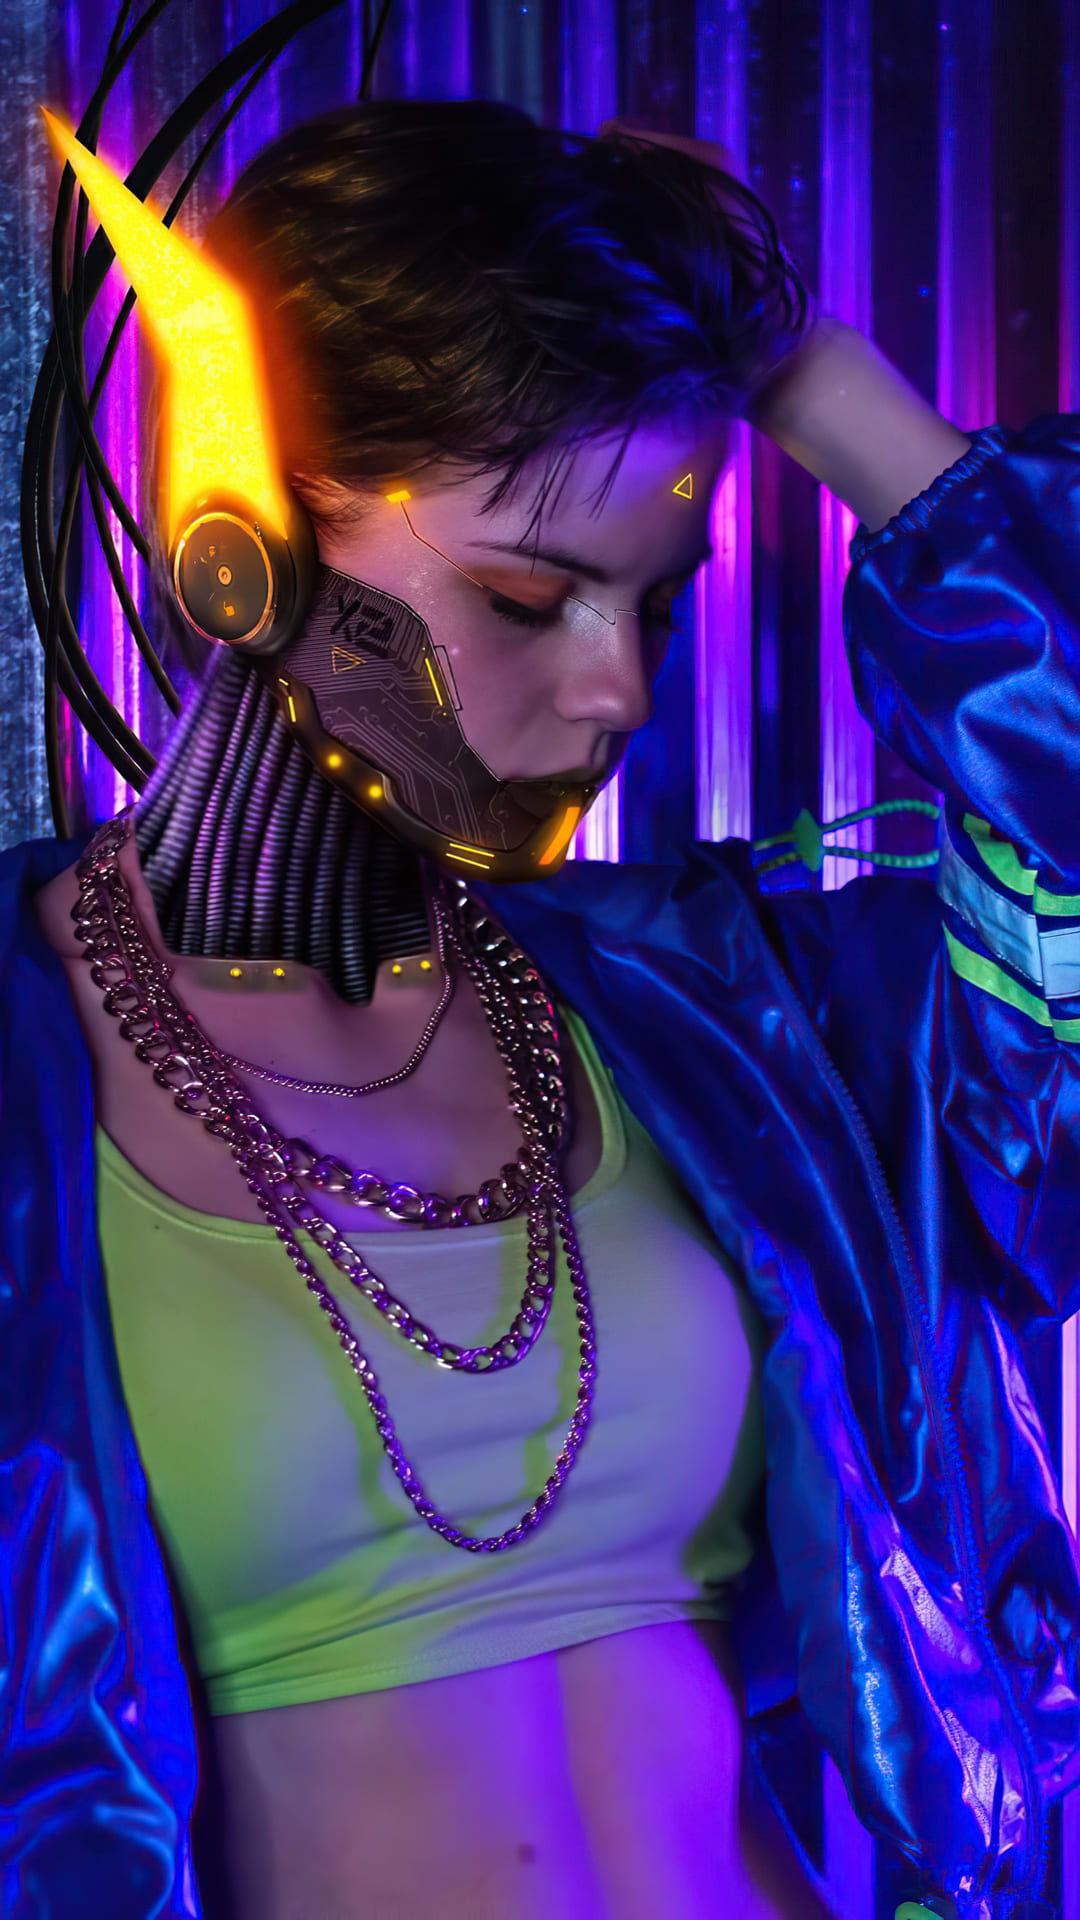 Cyberpunk 2077 Wallpapers [Desktop,iPhone,Android,Mobile]